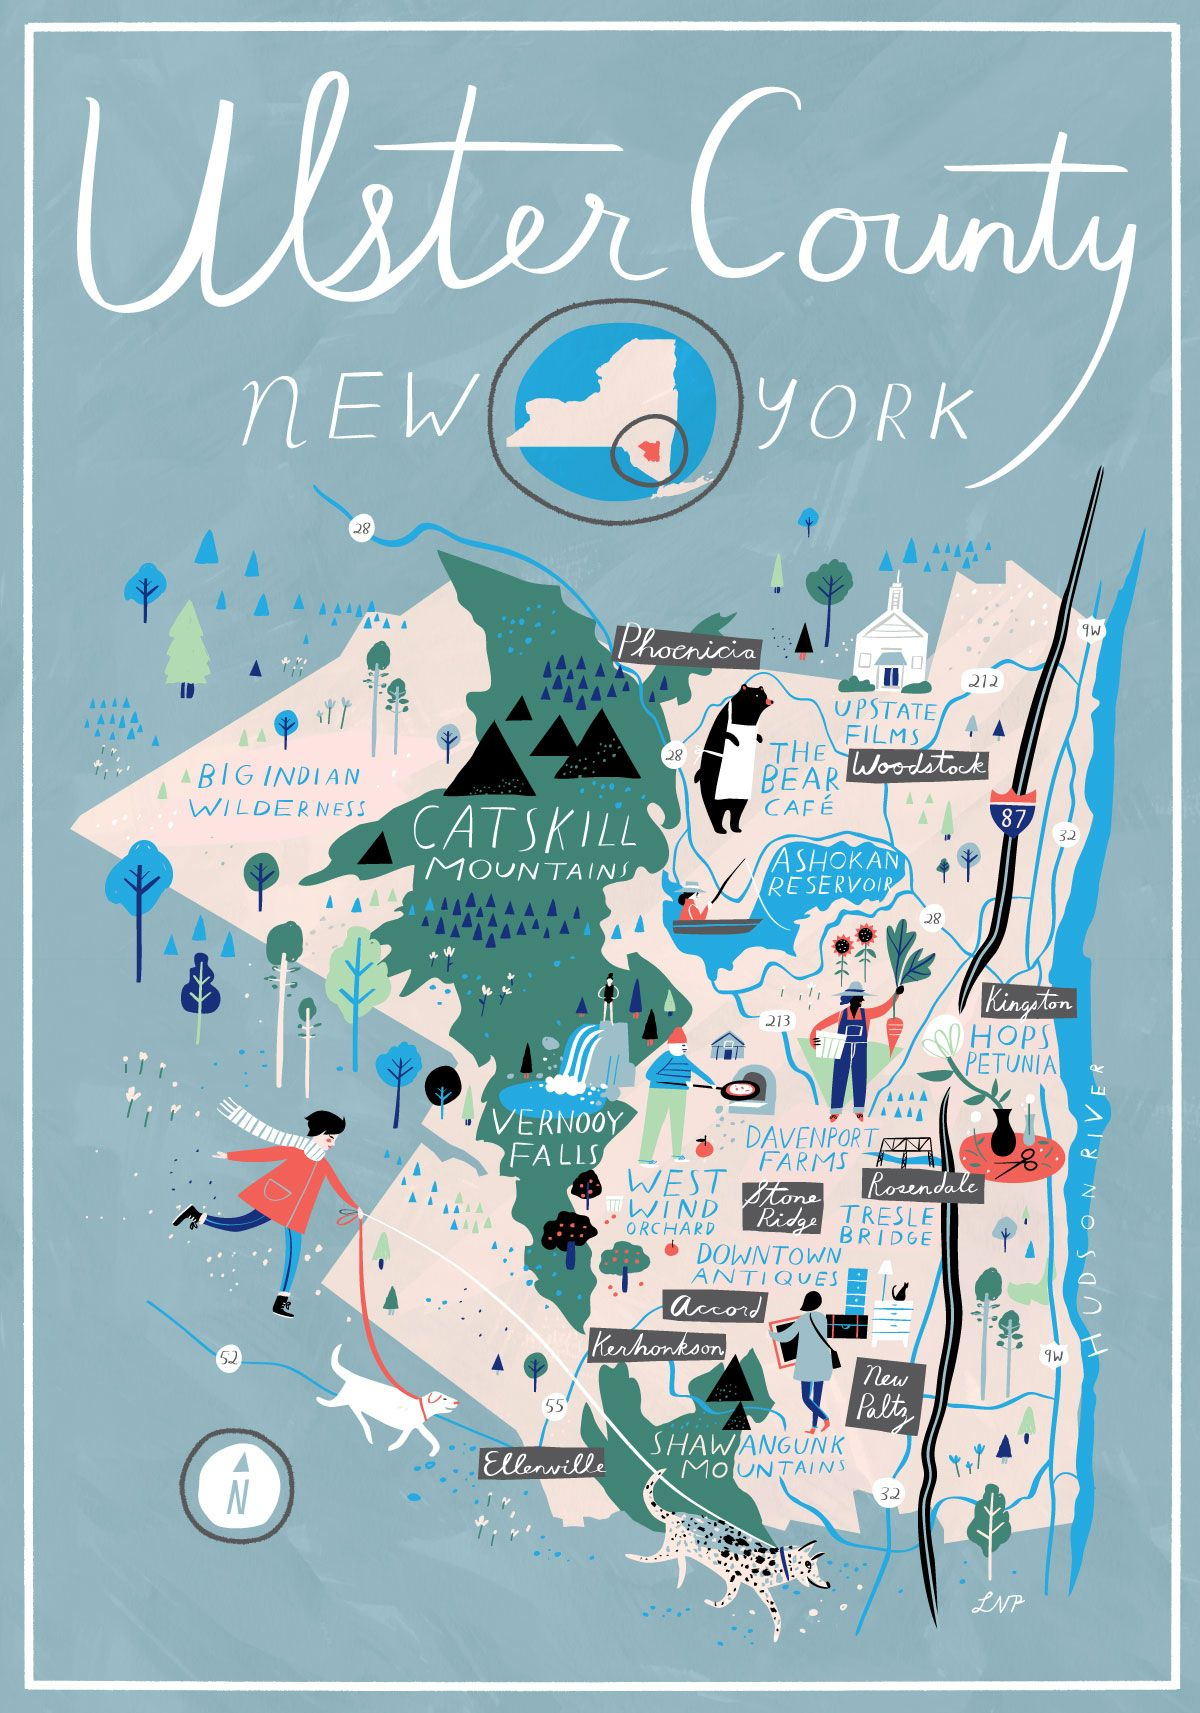 Pin By Frederique Herault Jehanno On Infographics Ulster County County Map Illustrated Map